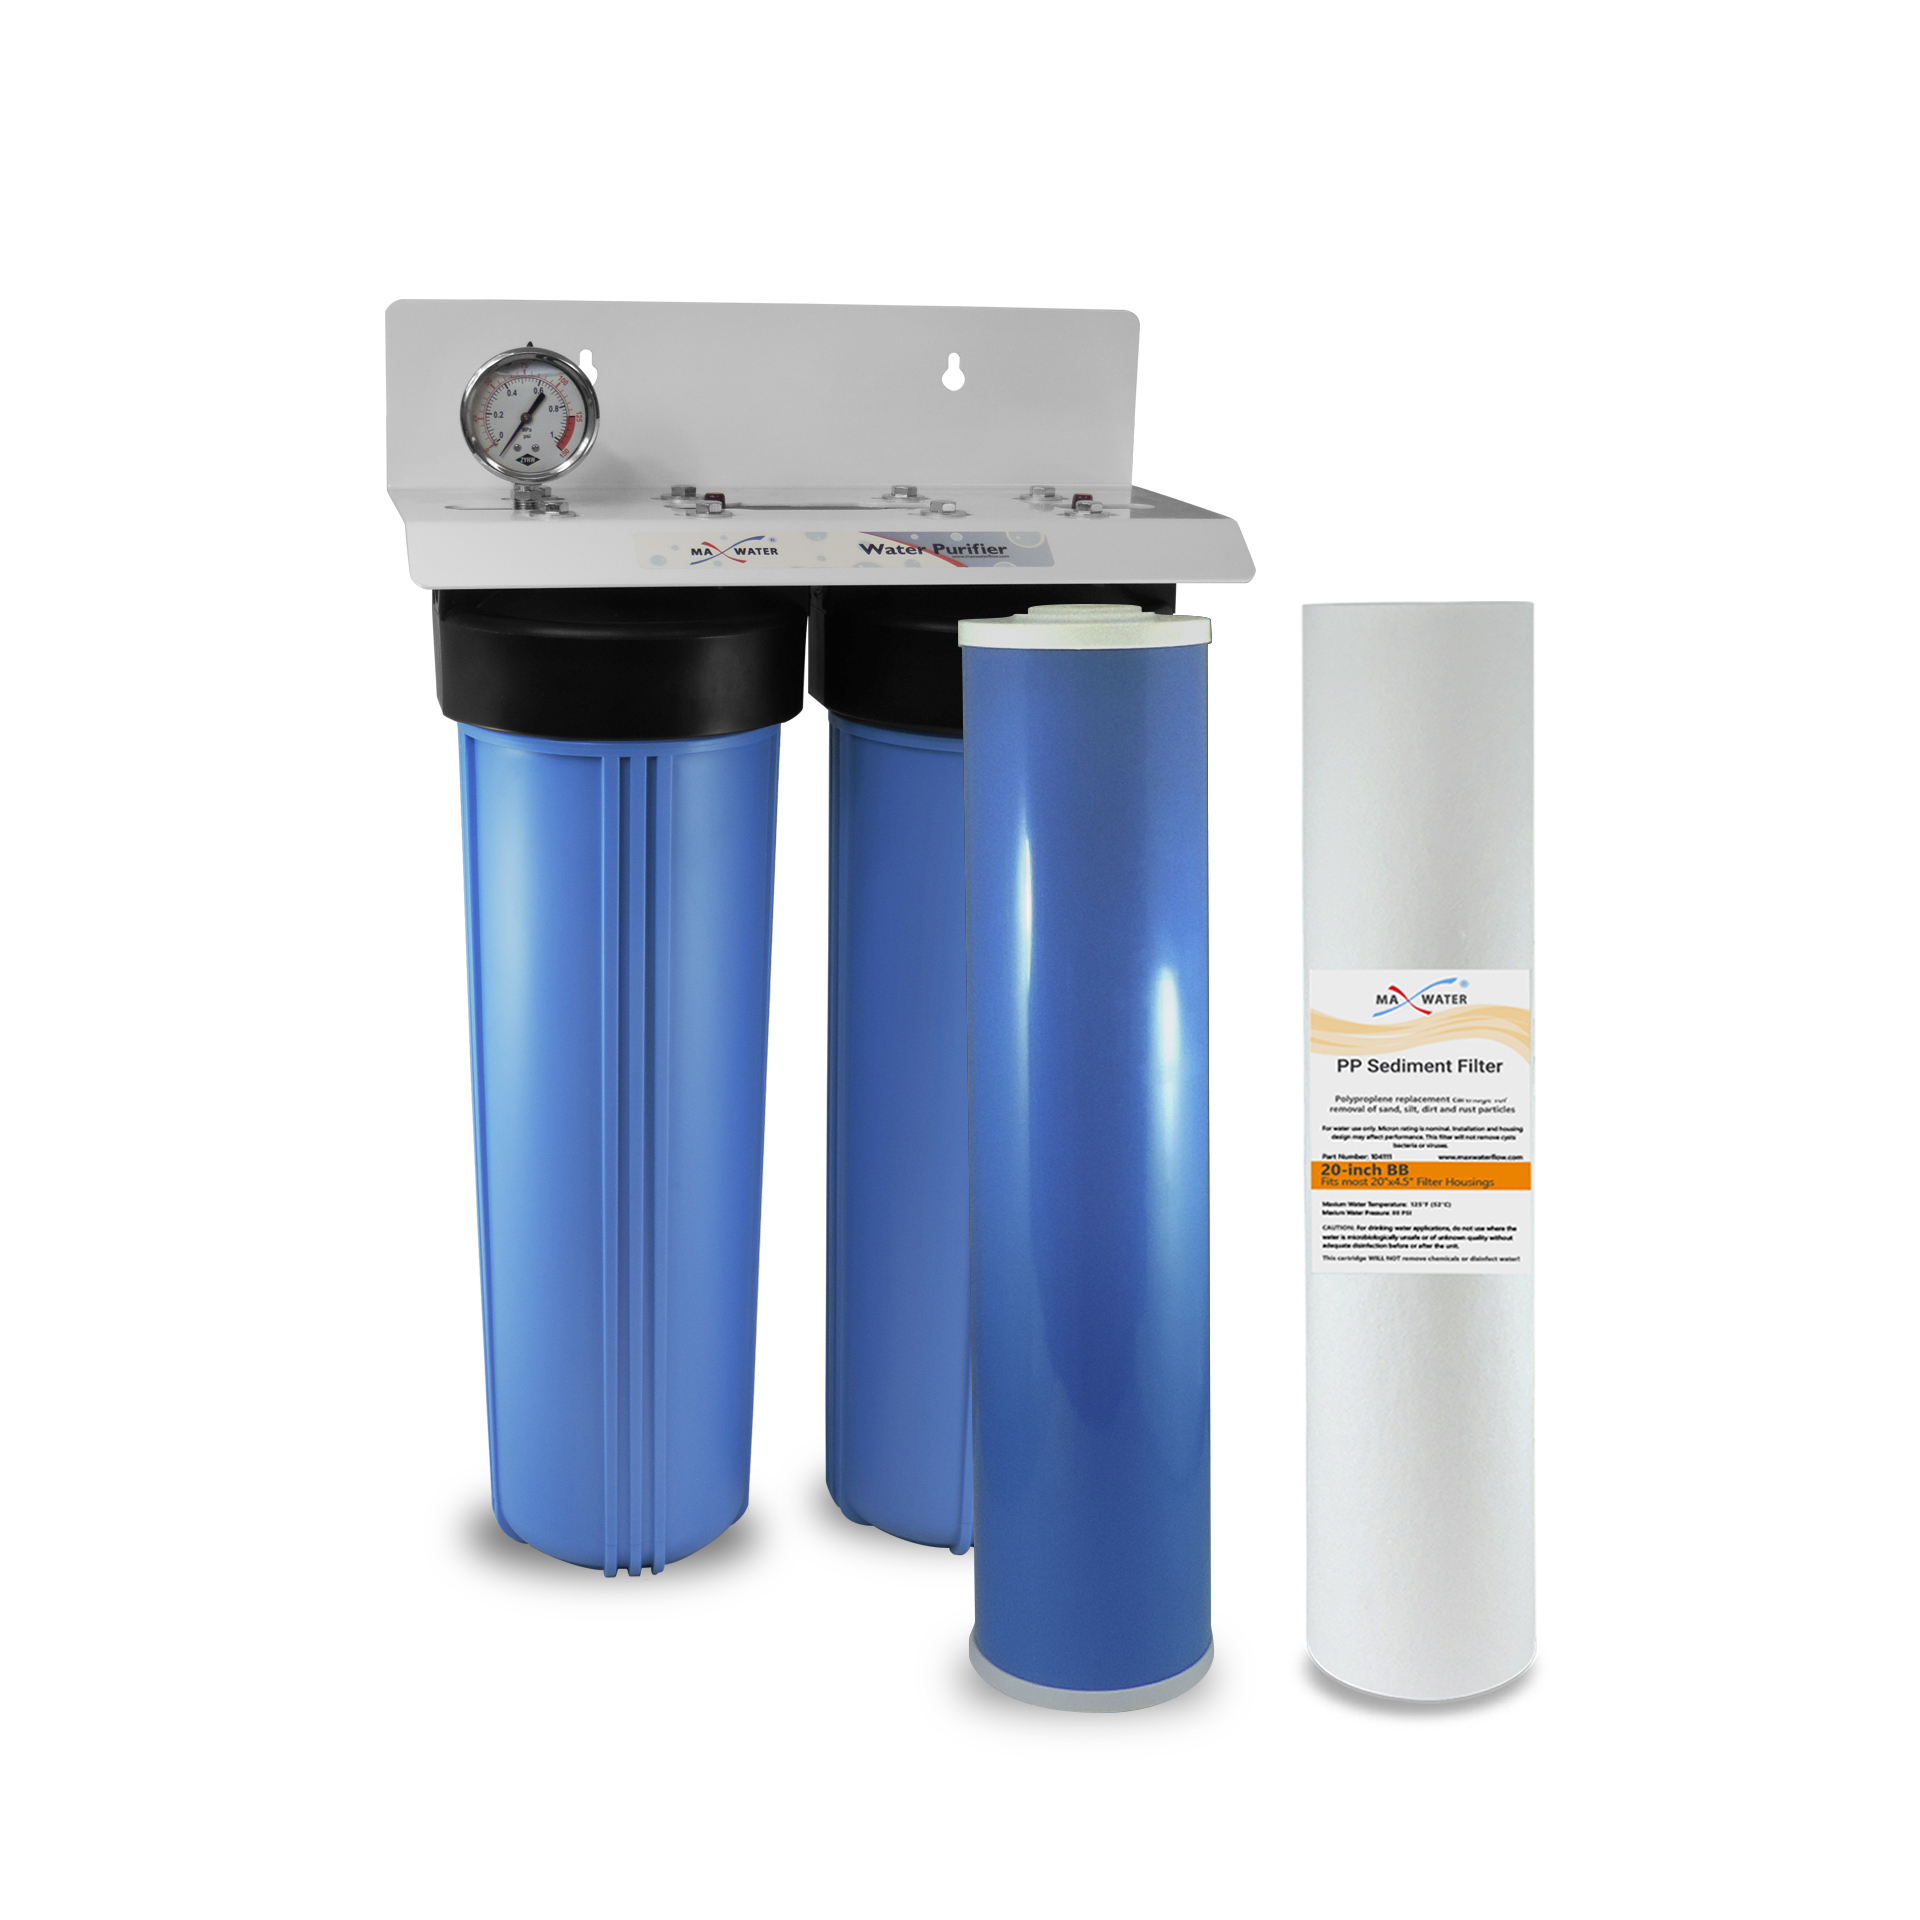 Big Blue Auto >> 2 Stage 20 X 4 5 Big Blue Auto Detailing Water Filtration System Or 1 Npt Ports